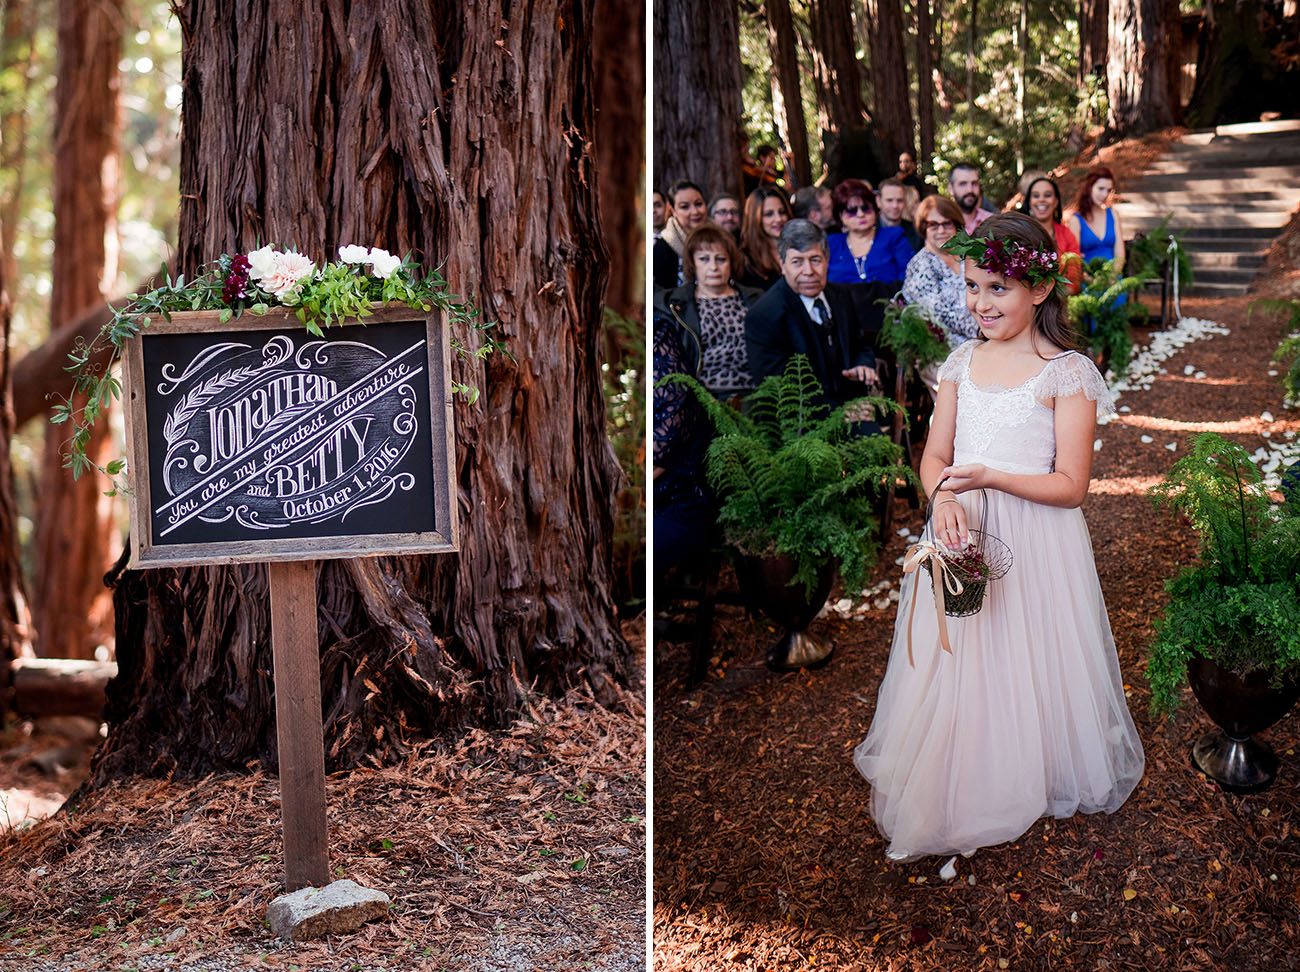 Magical Woodland Sequoia Wedding